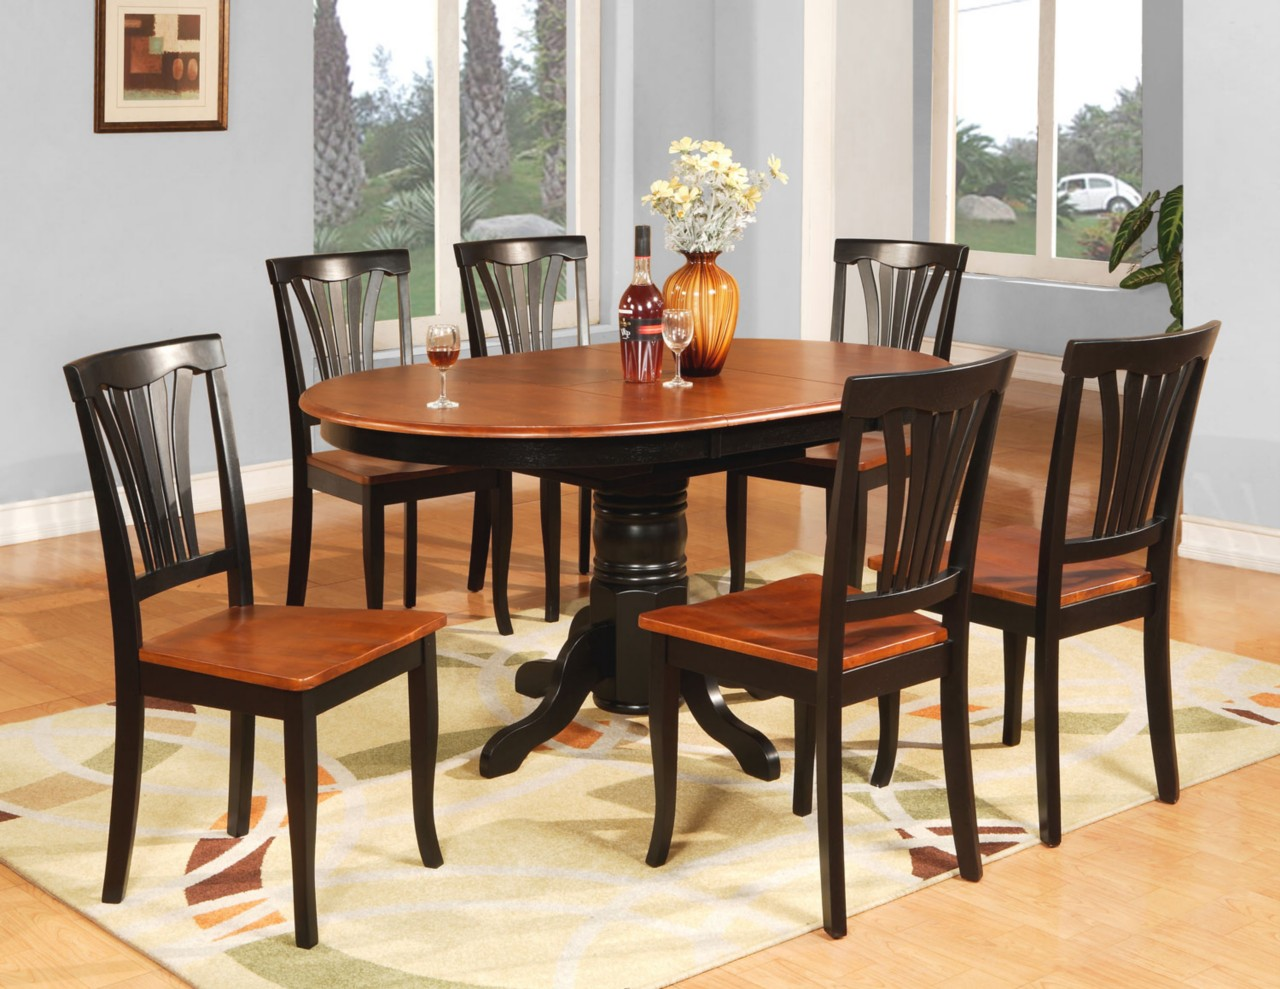 6 Dining Room Chairs 7 Pc Oval Dinette Kitchen Dining Room Table And 6 Chairs Ebay